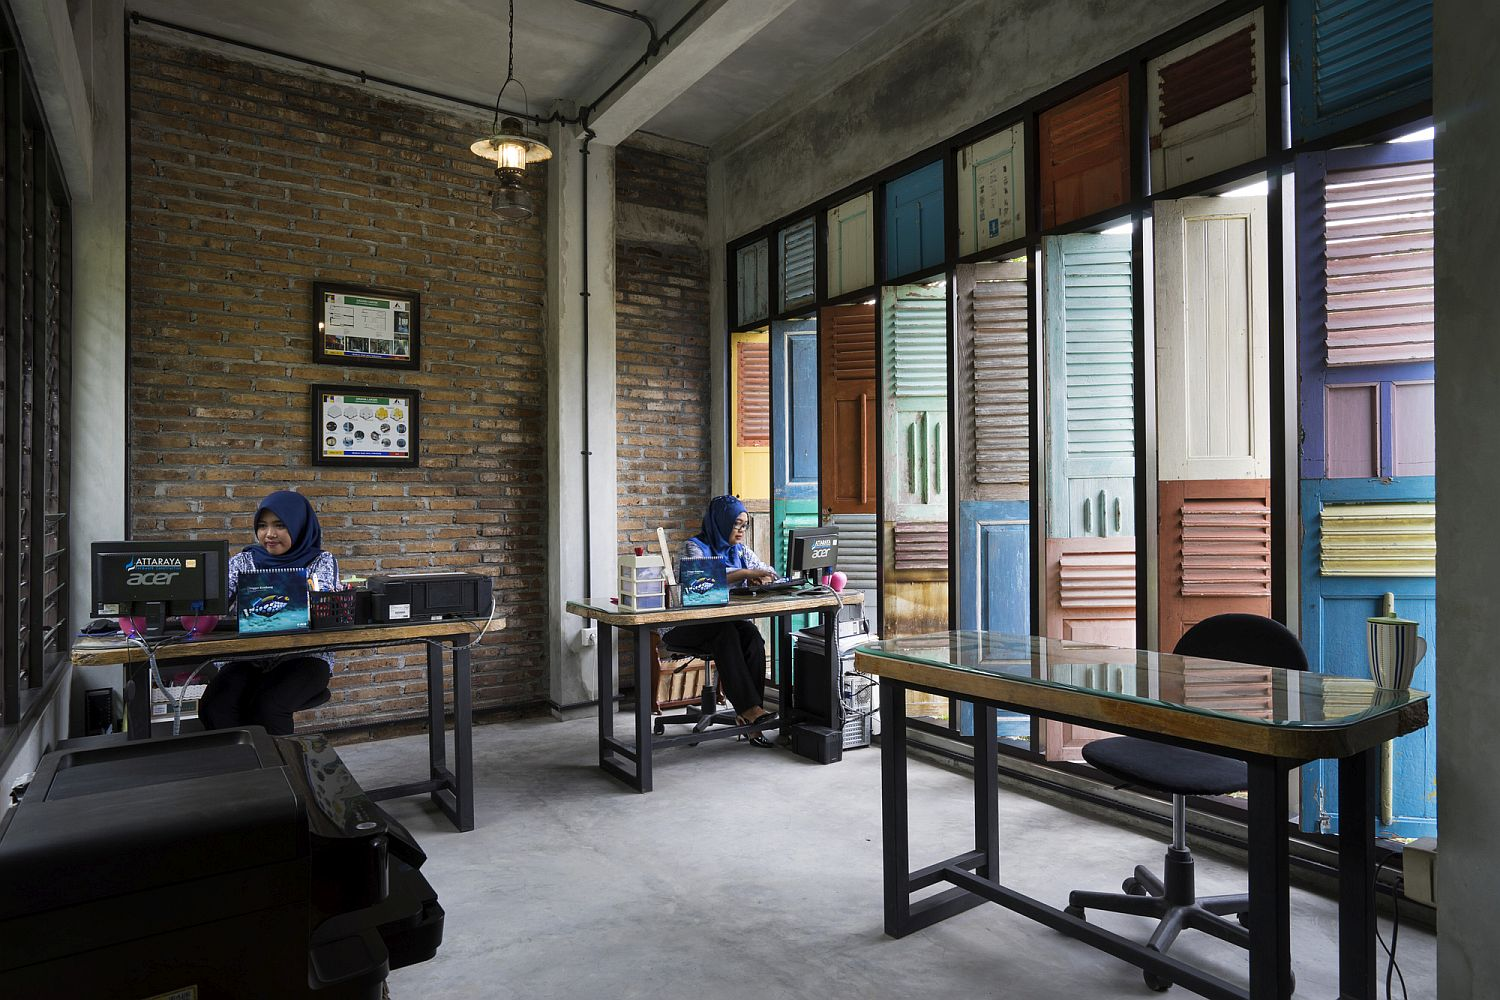 Home office with brick walls and vintage wooden panels